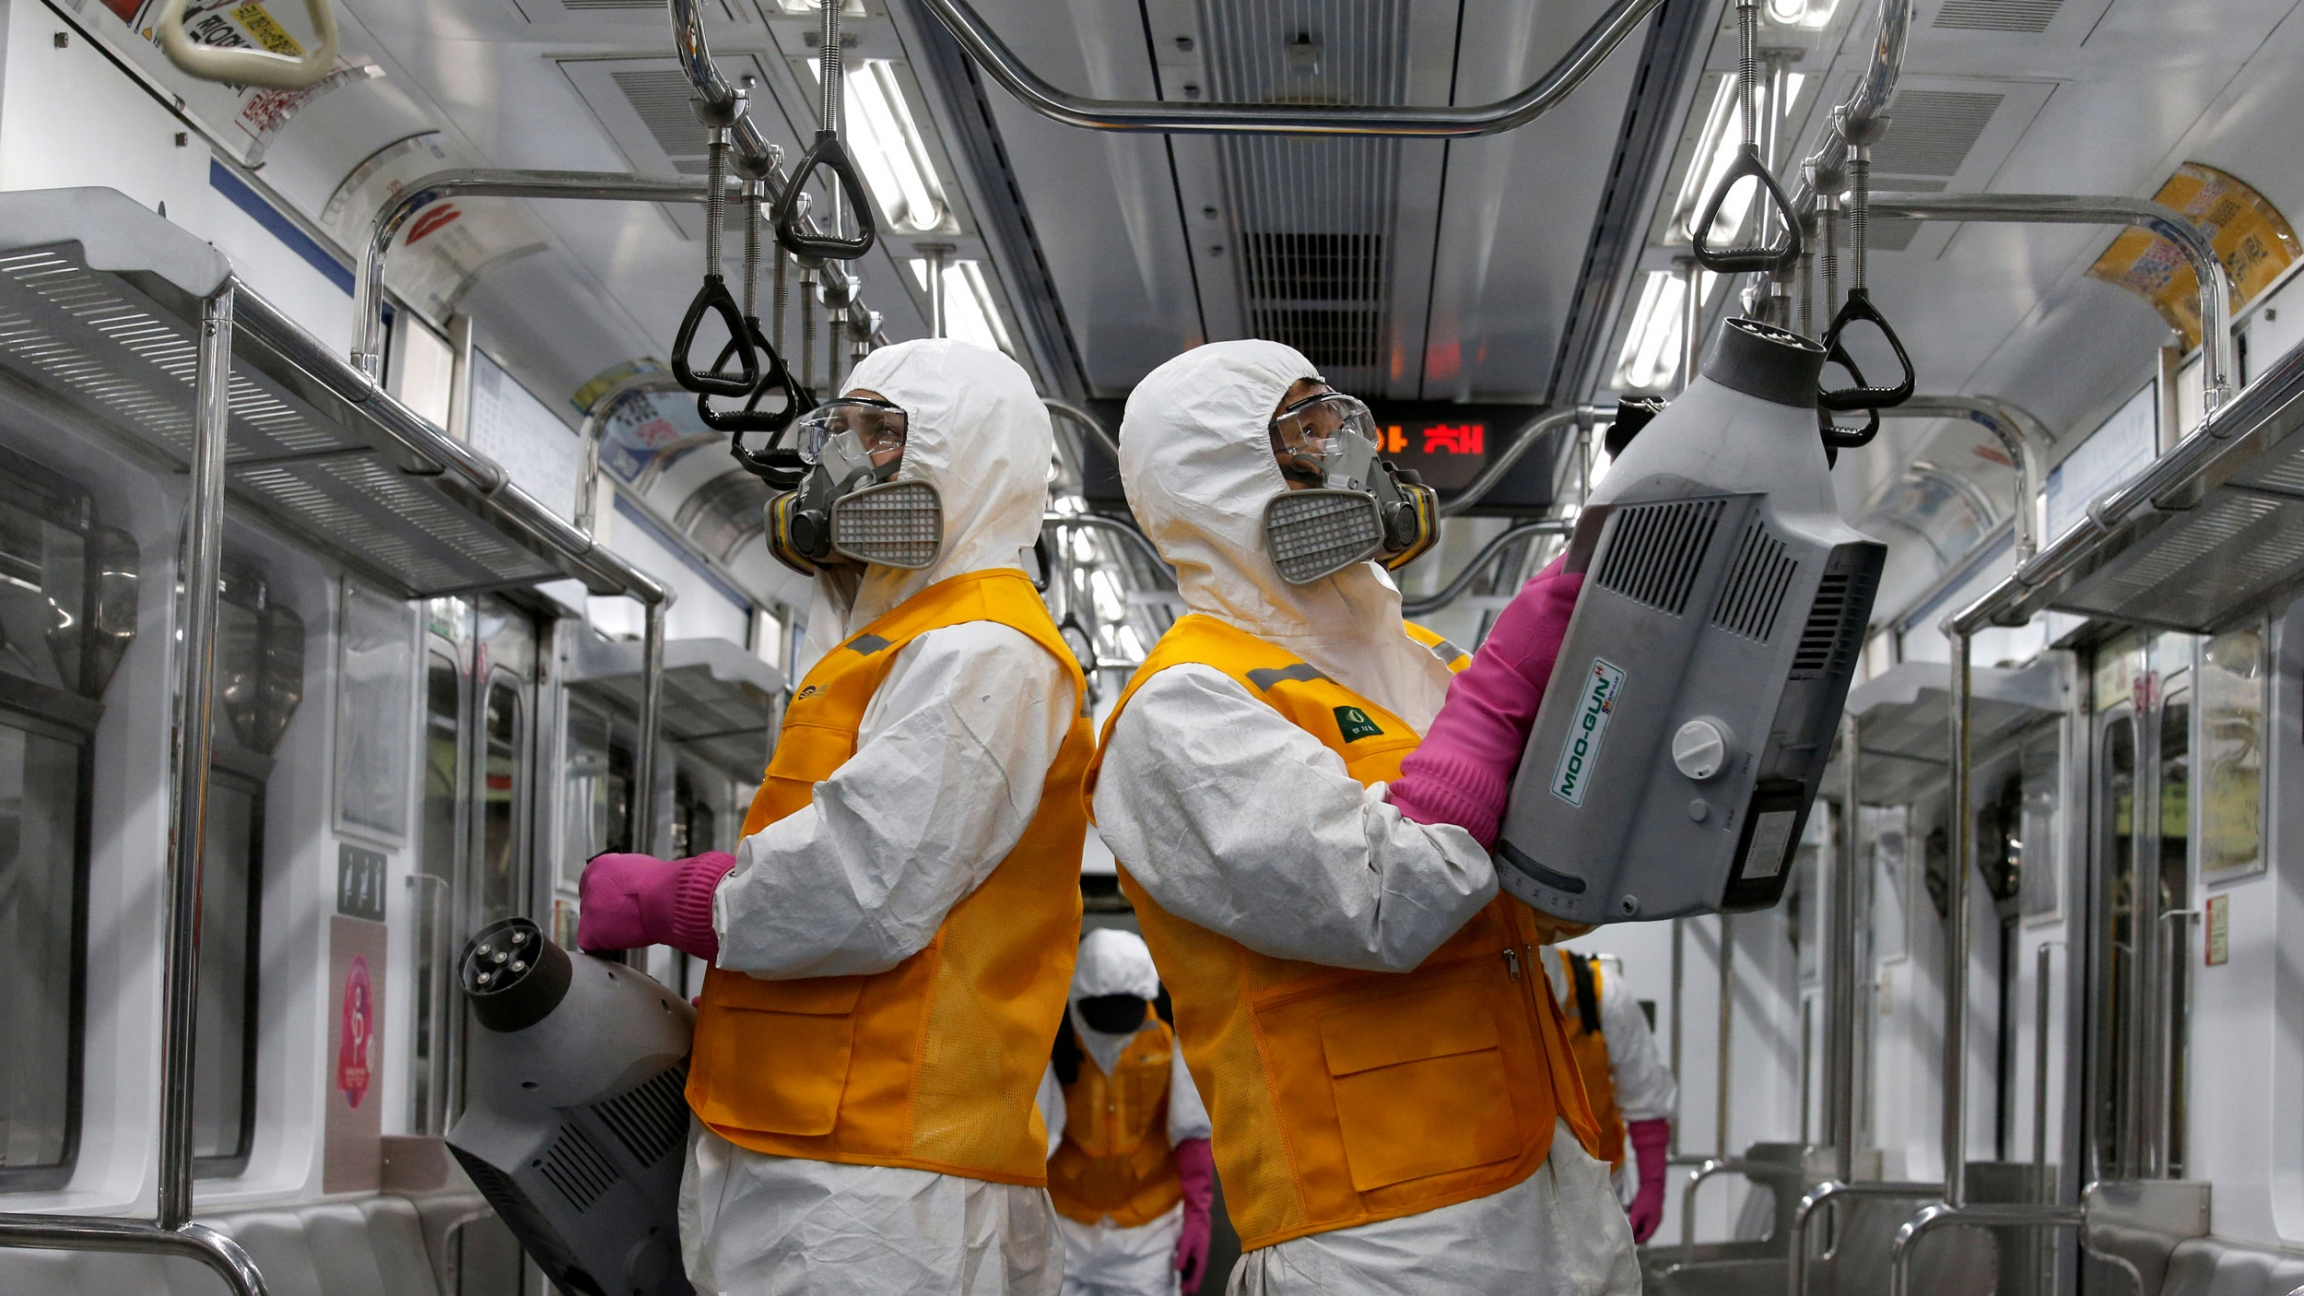 Two workers are shown inside a subway car with white and orange protective and carrying machines that are cleaning the car.